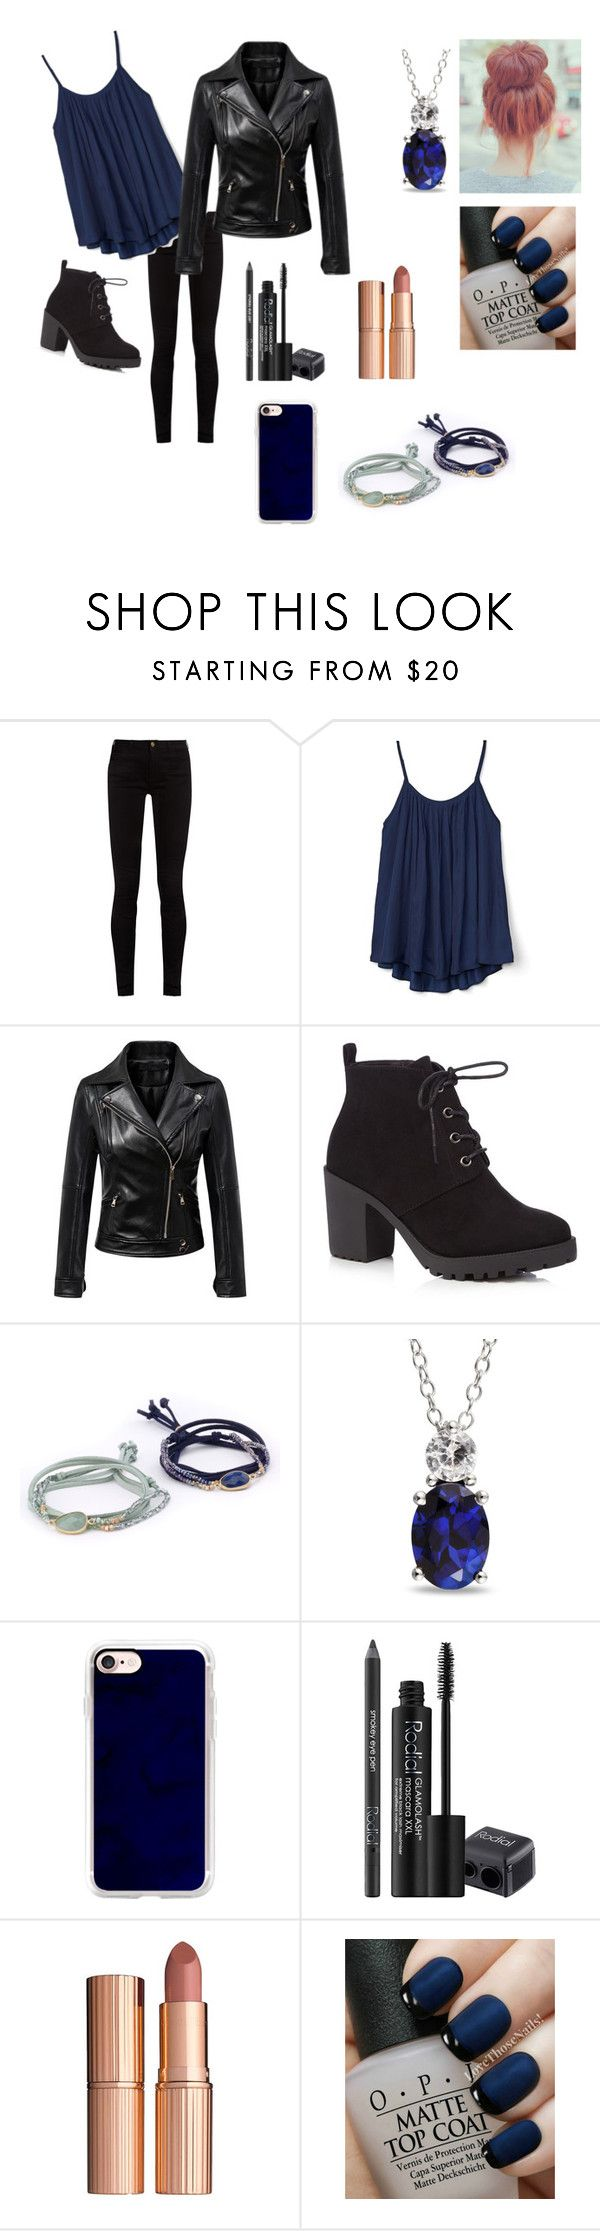 """#blue #redhead #boots #charmbraclet #necklace #lipstick"" by annabethjames ❤ liked on Polyvore featuring Gucci, Gap, Red Herring, Ice, Casetify, Rodial, Charlotte Tilbury and OPI"